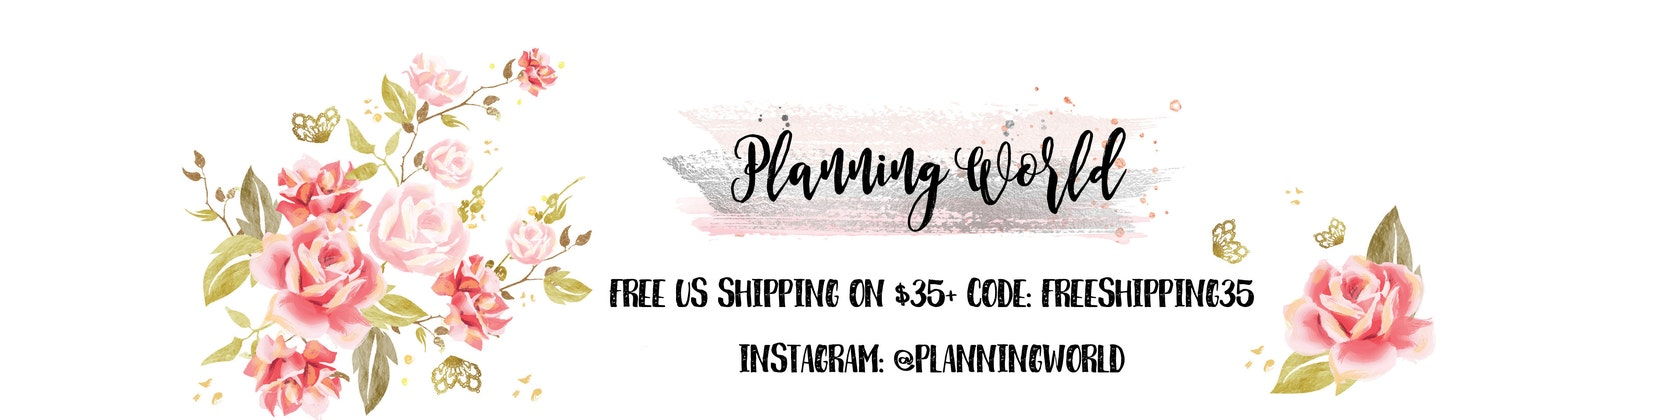 Planning world by planningworld on etsy planningworld fandeluxe